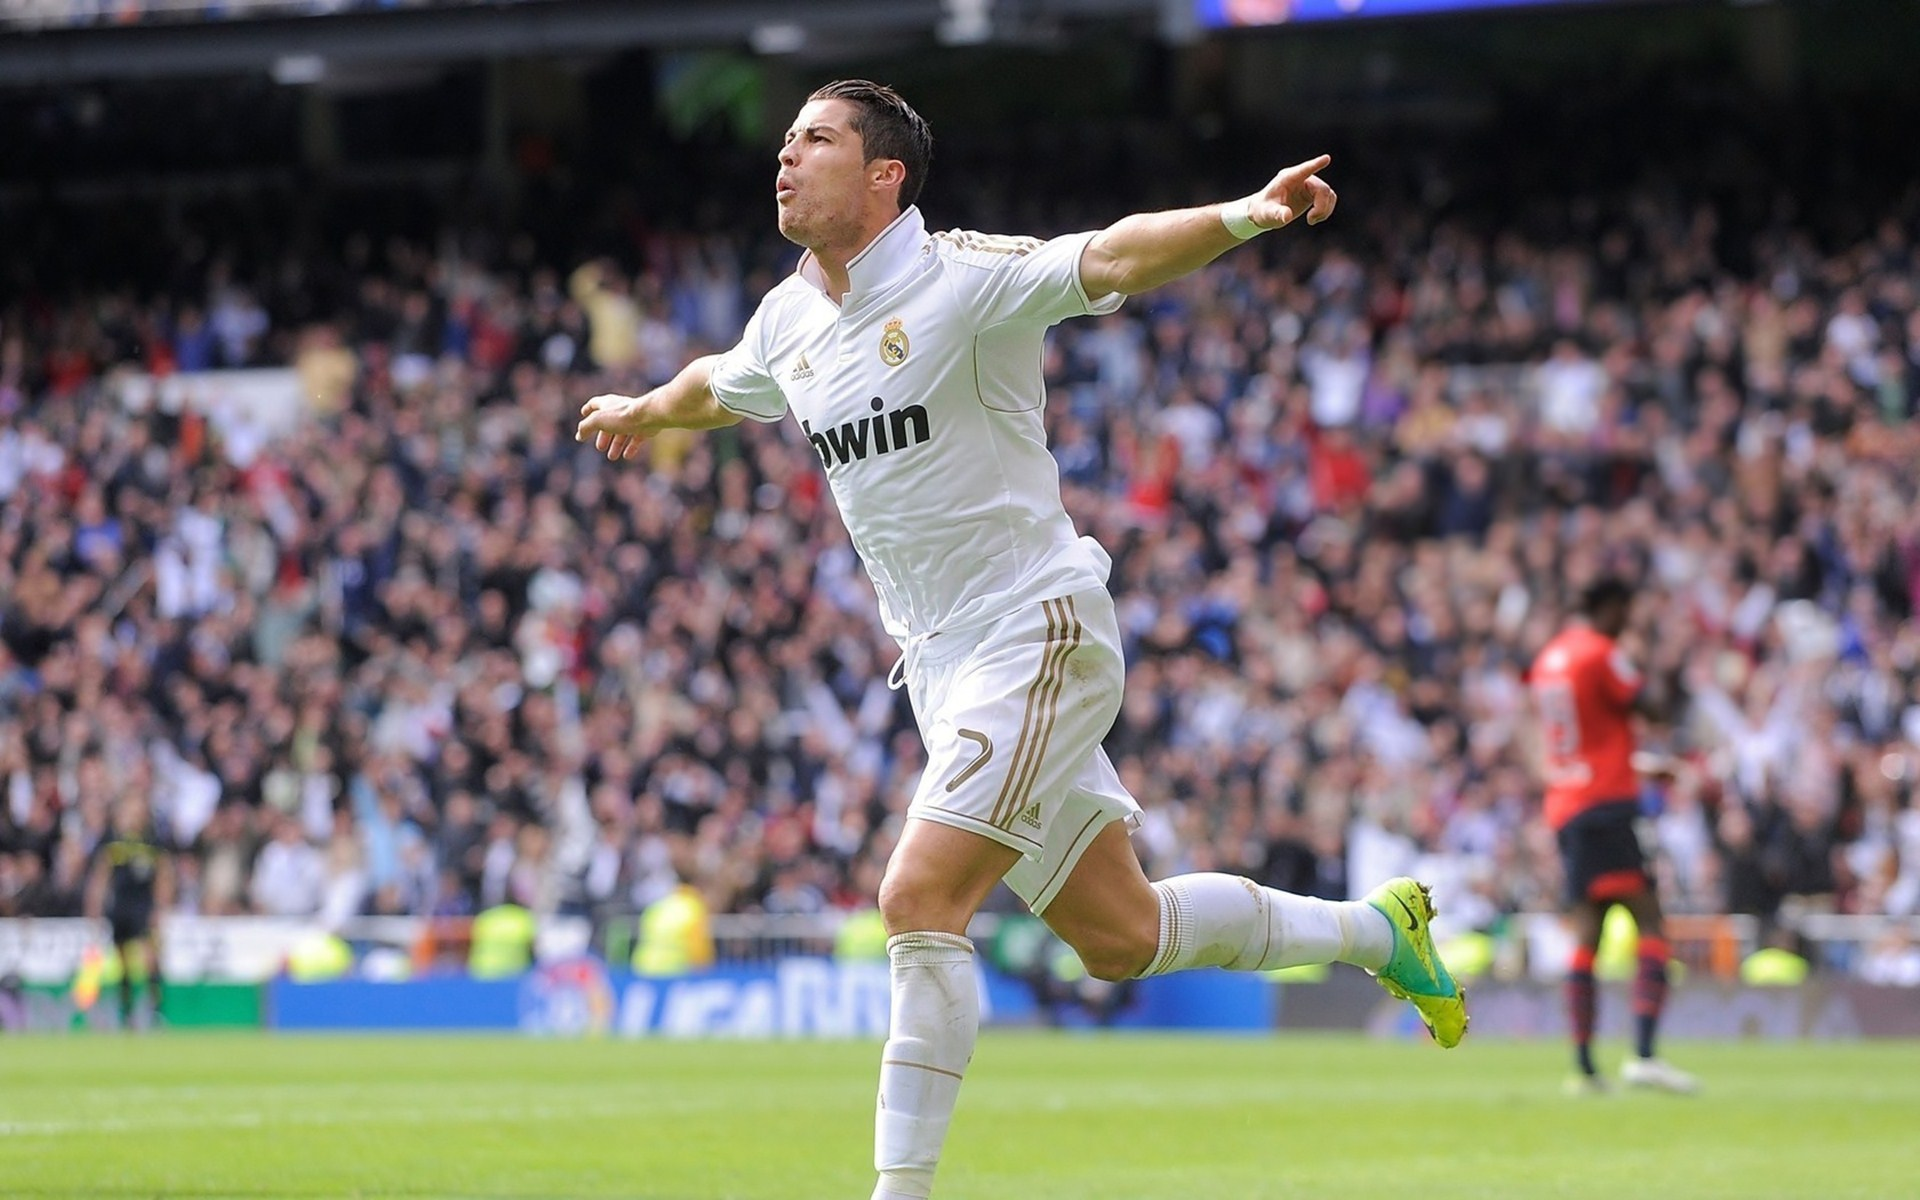 Cr7 Wallpaper Iphone Ronaldo Wallpapers Pictures Images